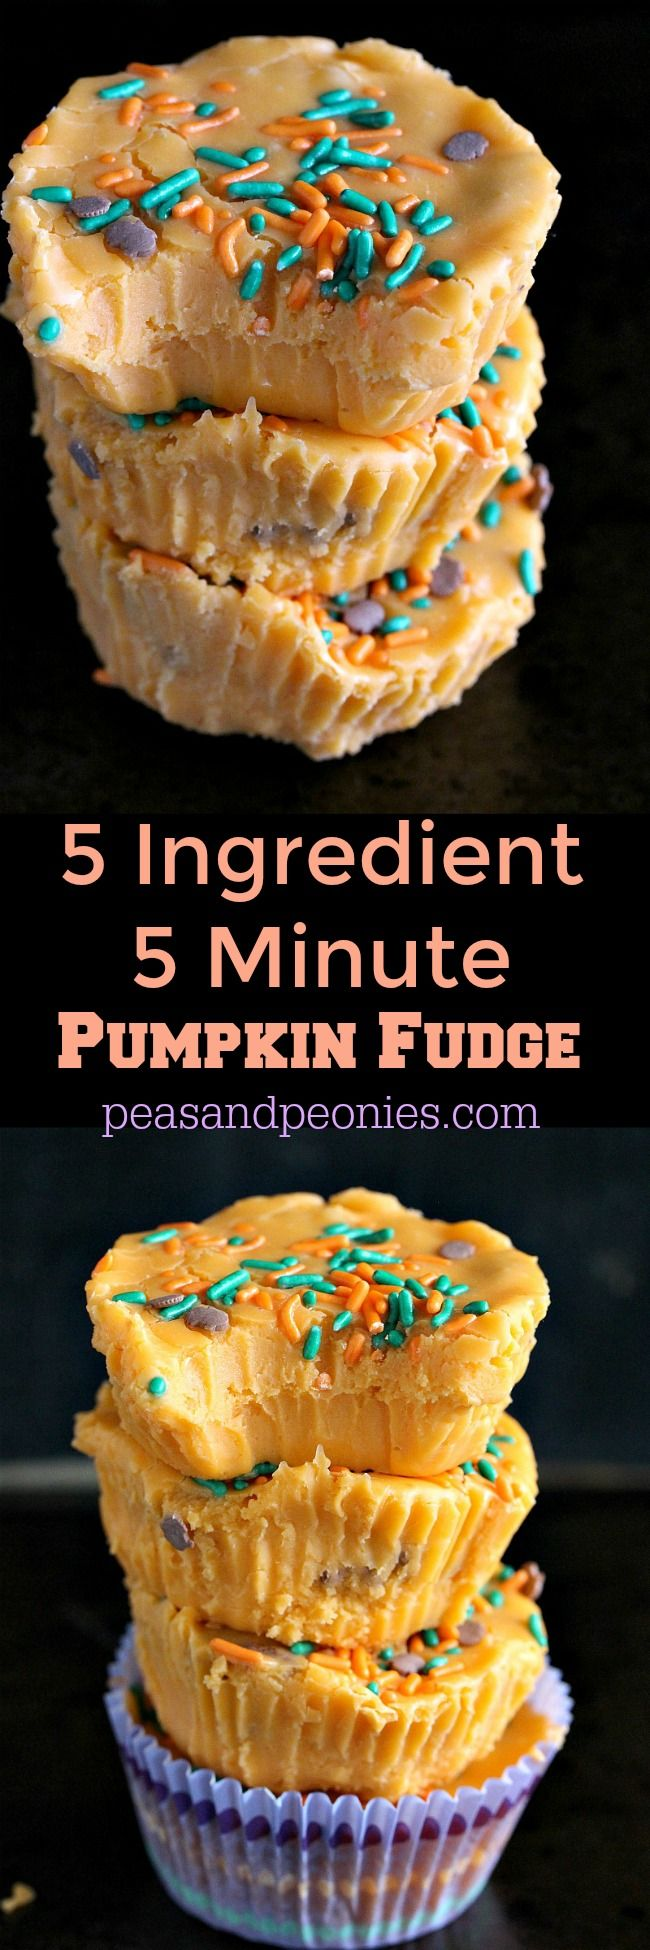 Very easy, festive and delicious Pumpkin Fudge made in 5 minutes with only 5 ingredients! The fudge is also gluten free and no bake! - Peas and Peonies